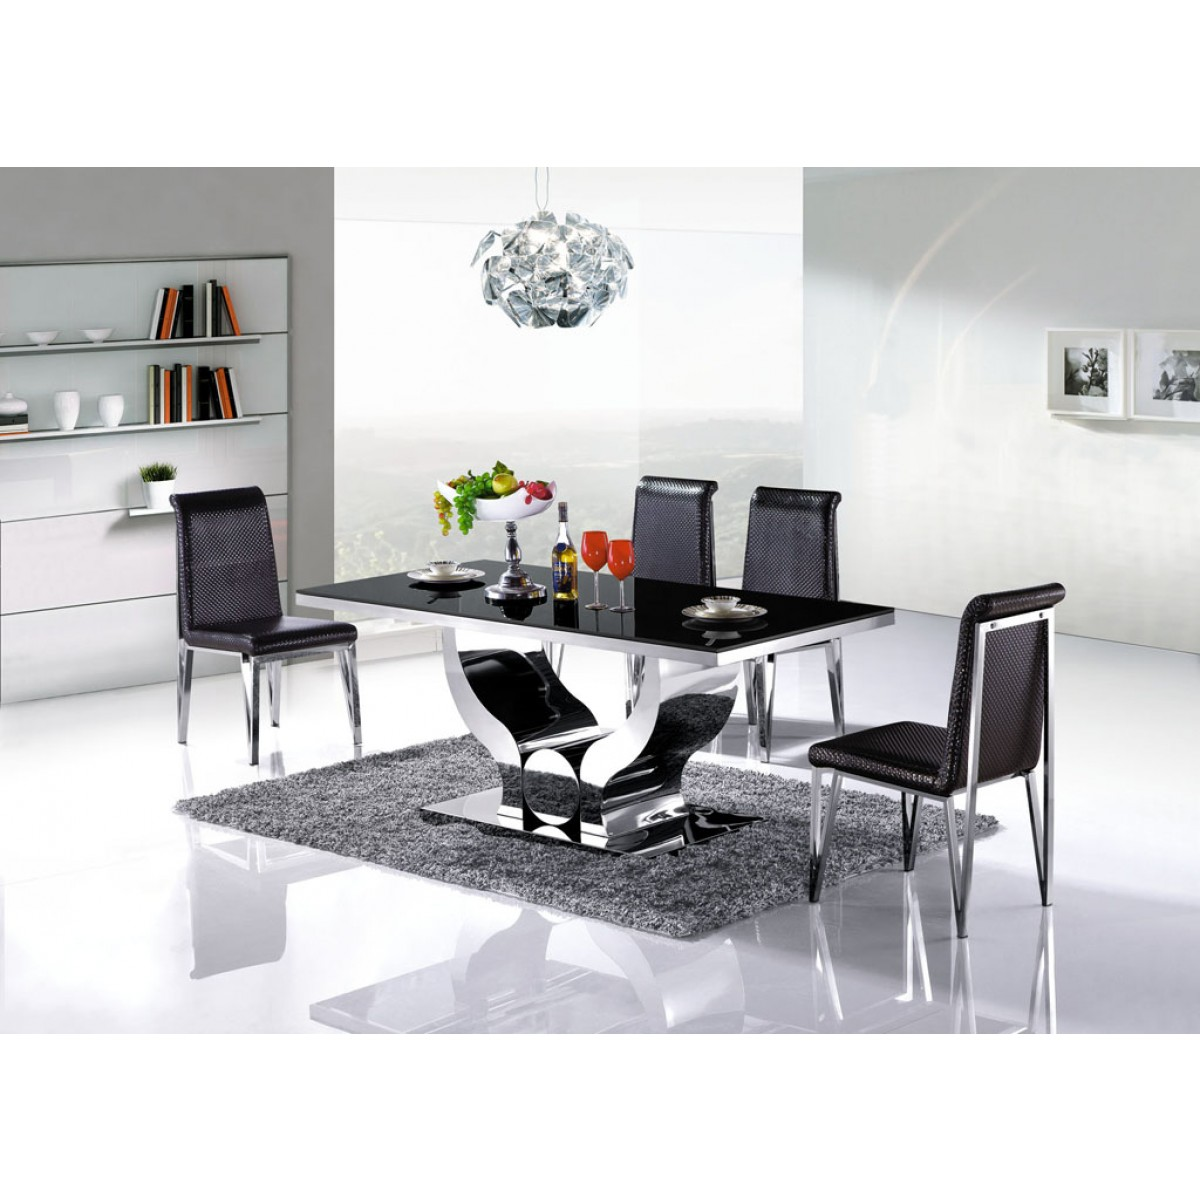 Table de salle manger en inox nova pop for Table de salle a manger marbre